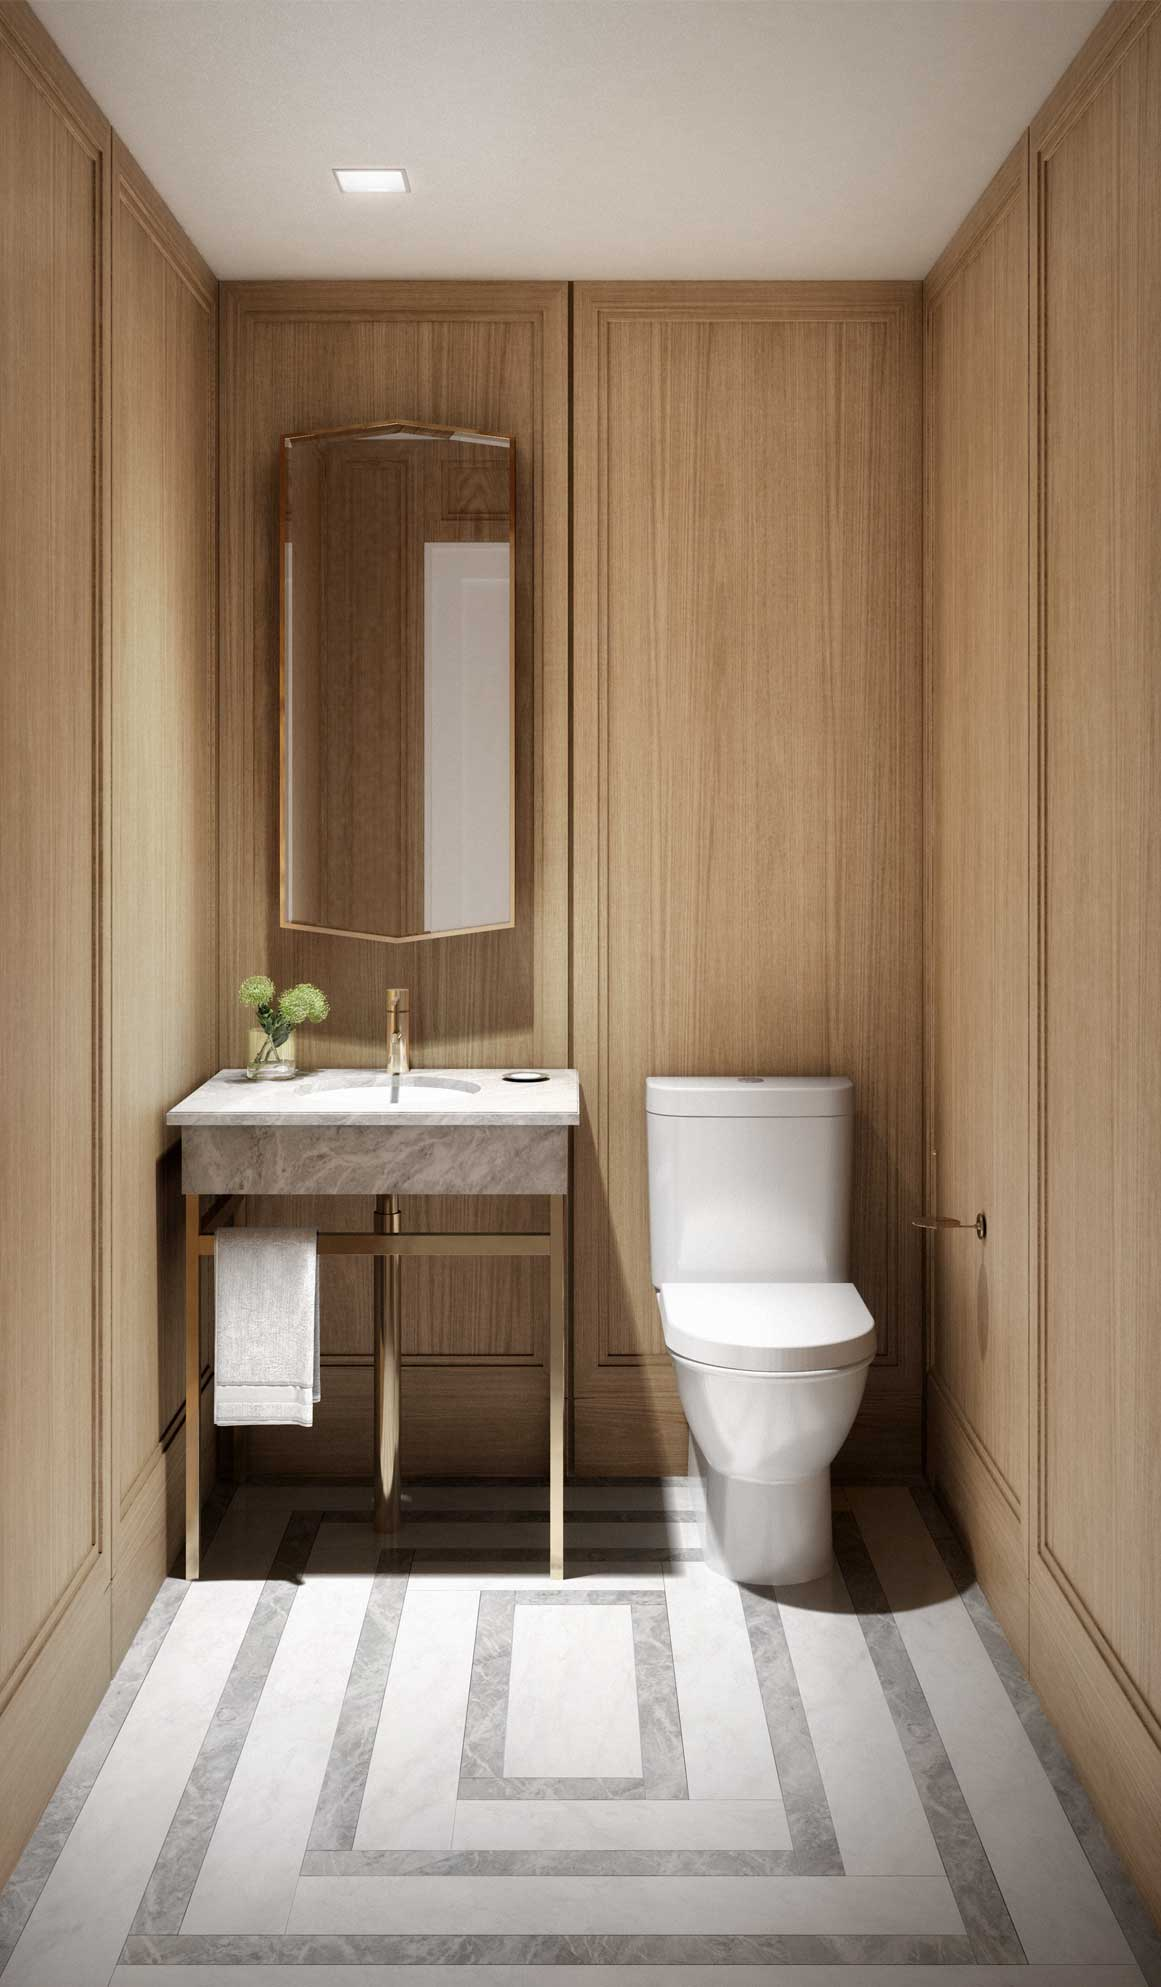 Powder room interior